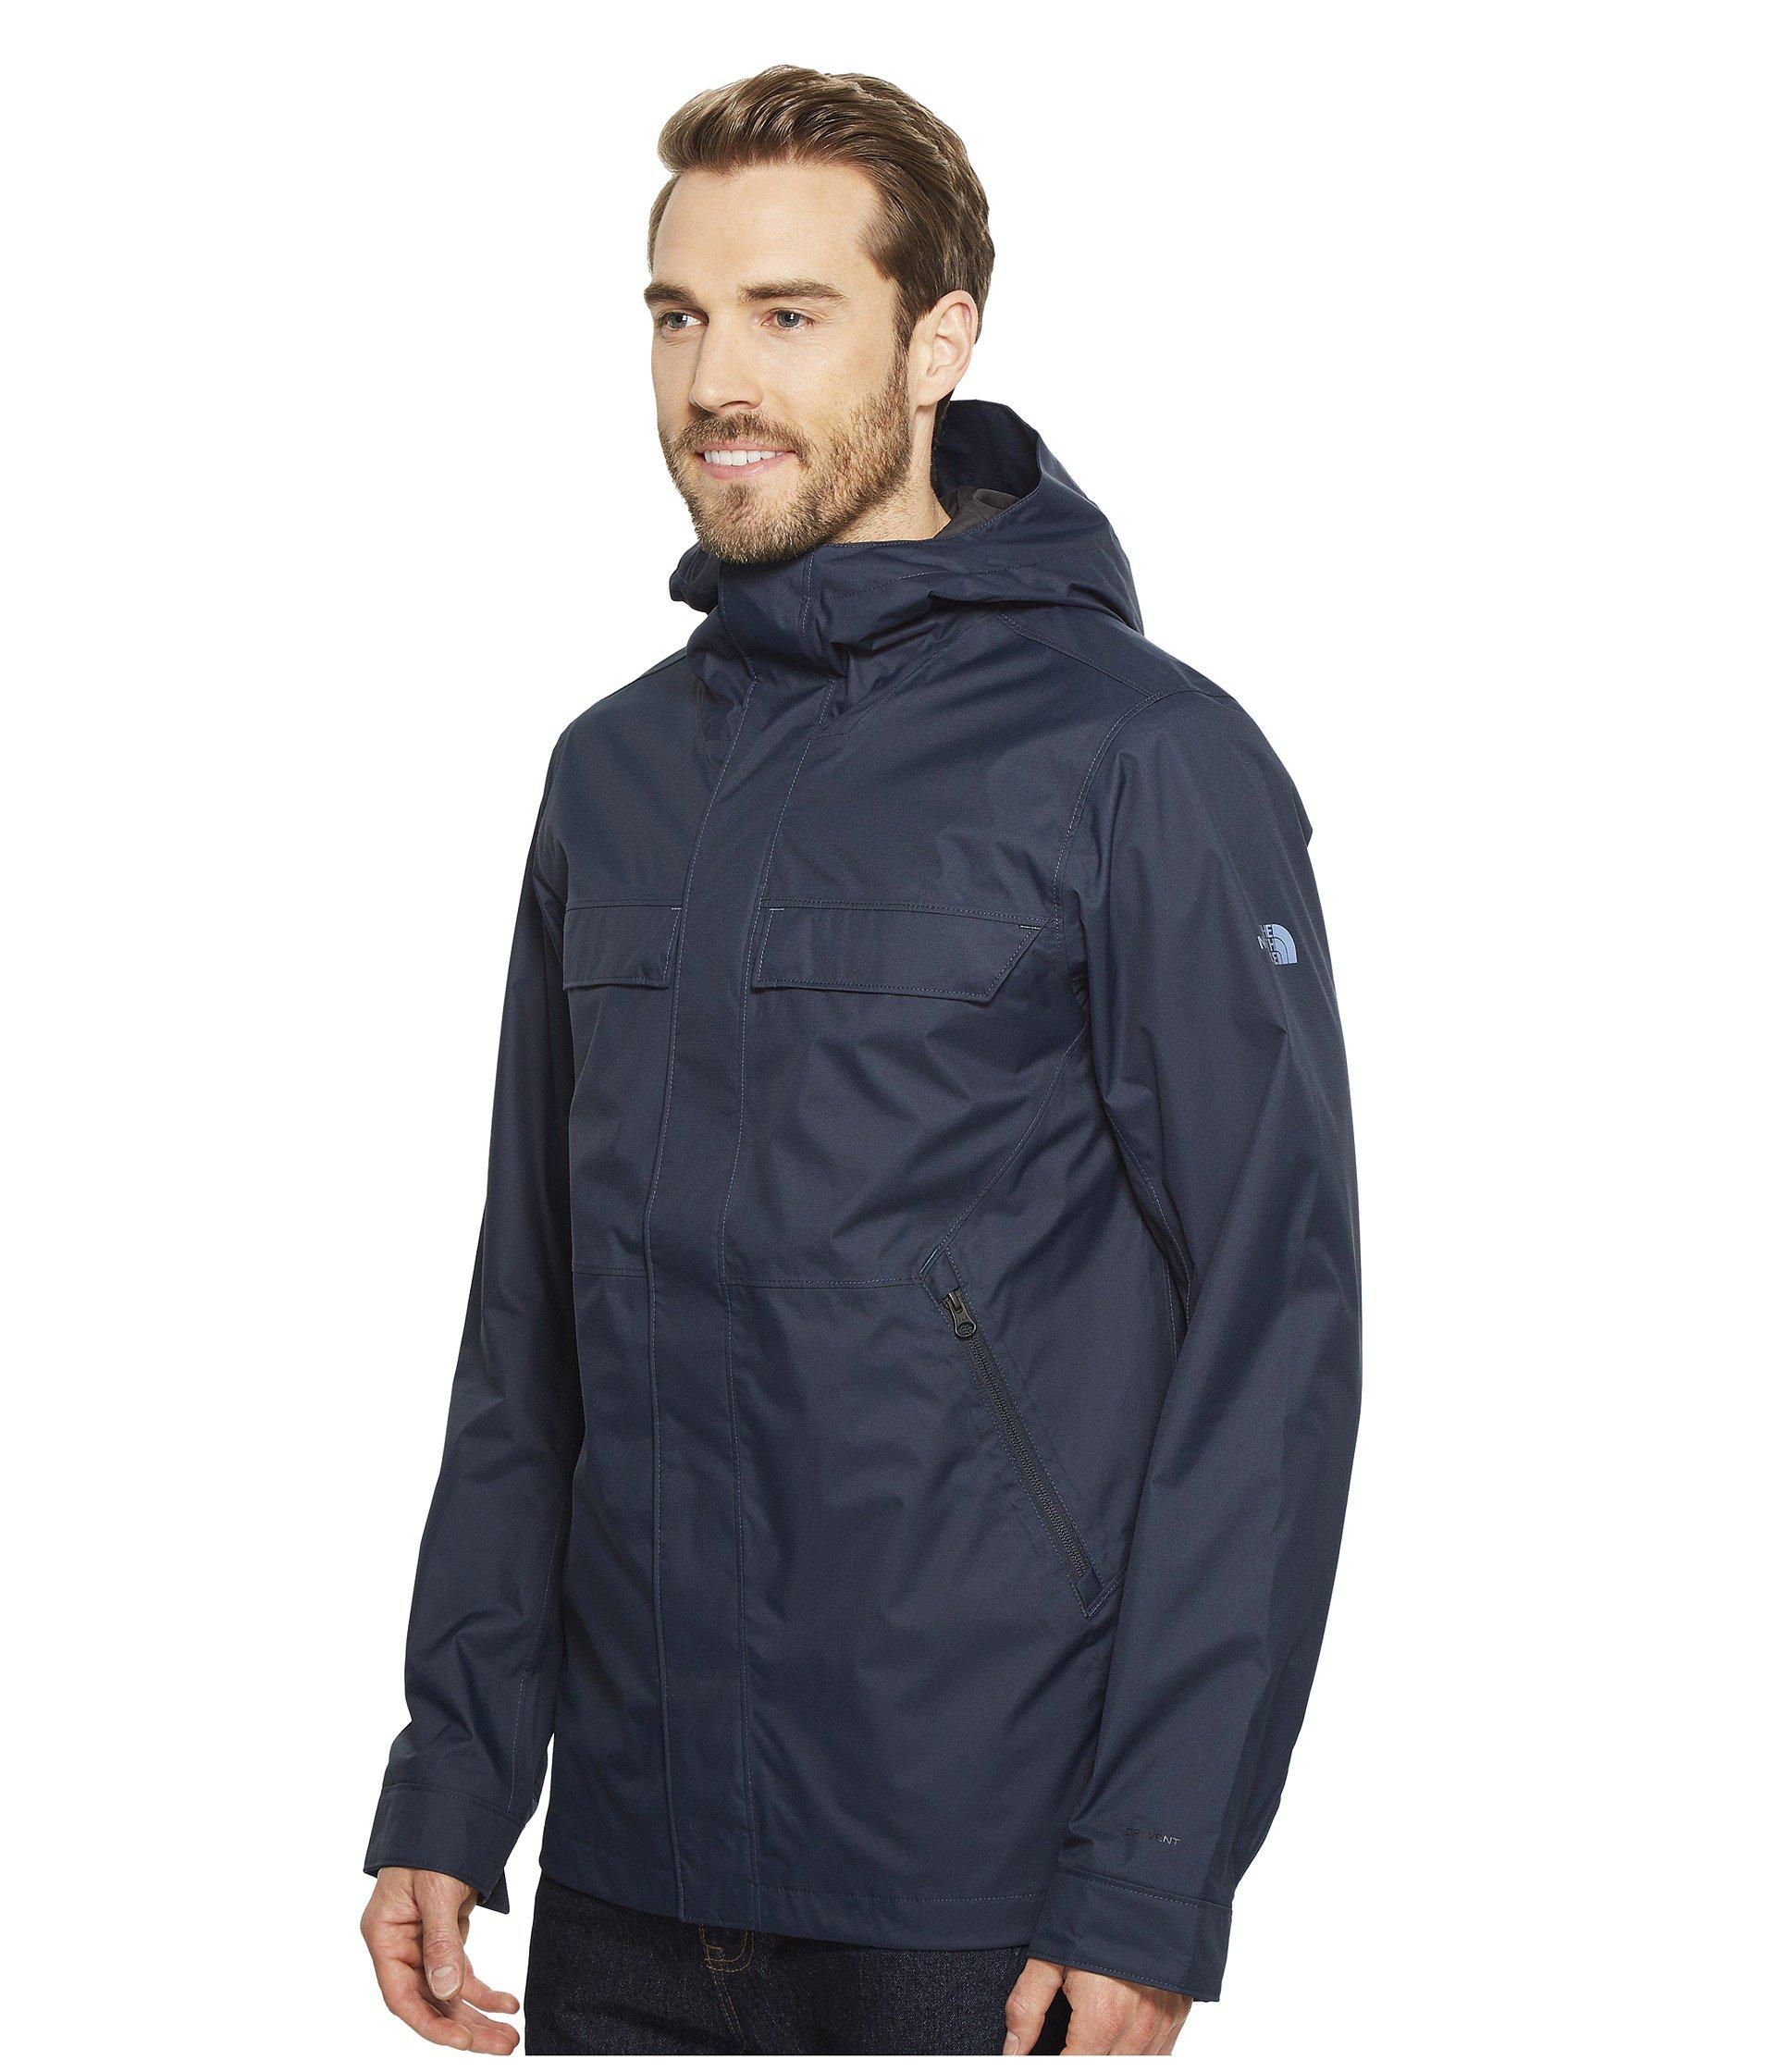 c93a425c1524 Lyst - The North Face Jenison Ii Jacket in Blue for Men - Save 22%